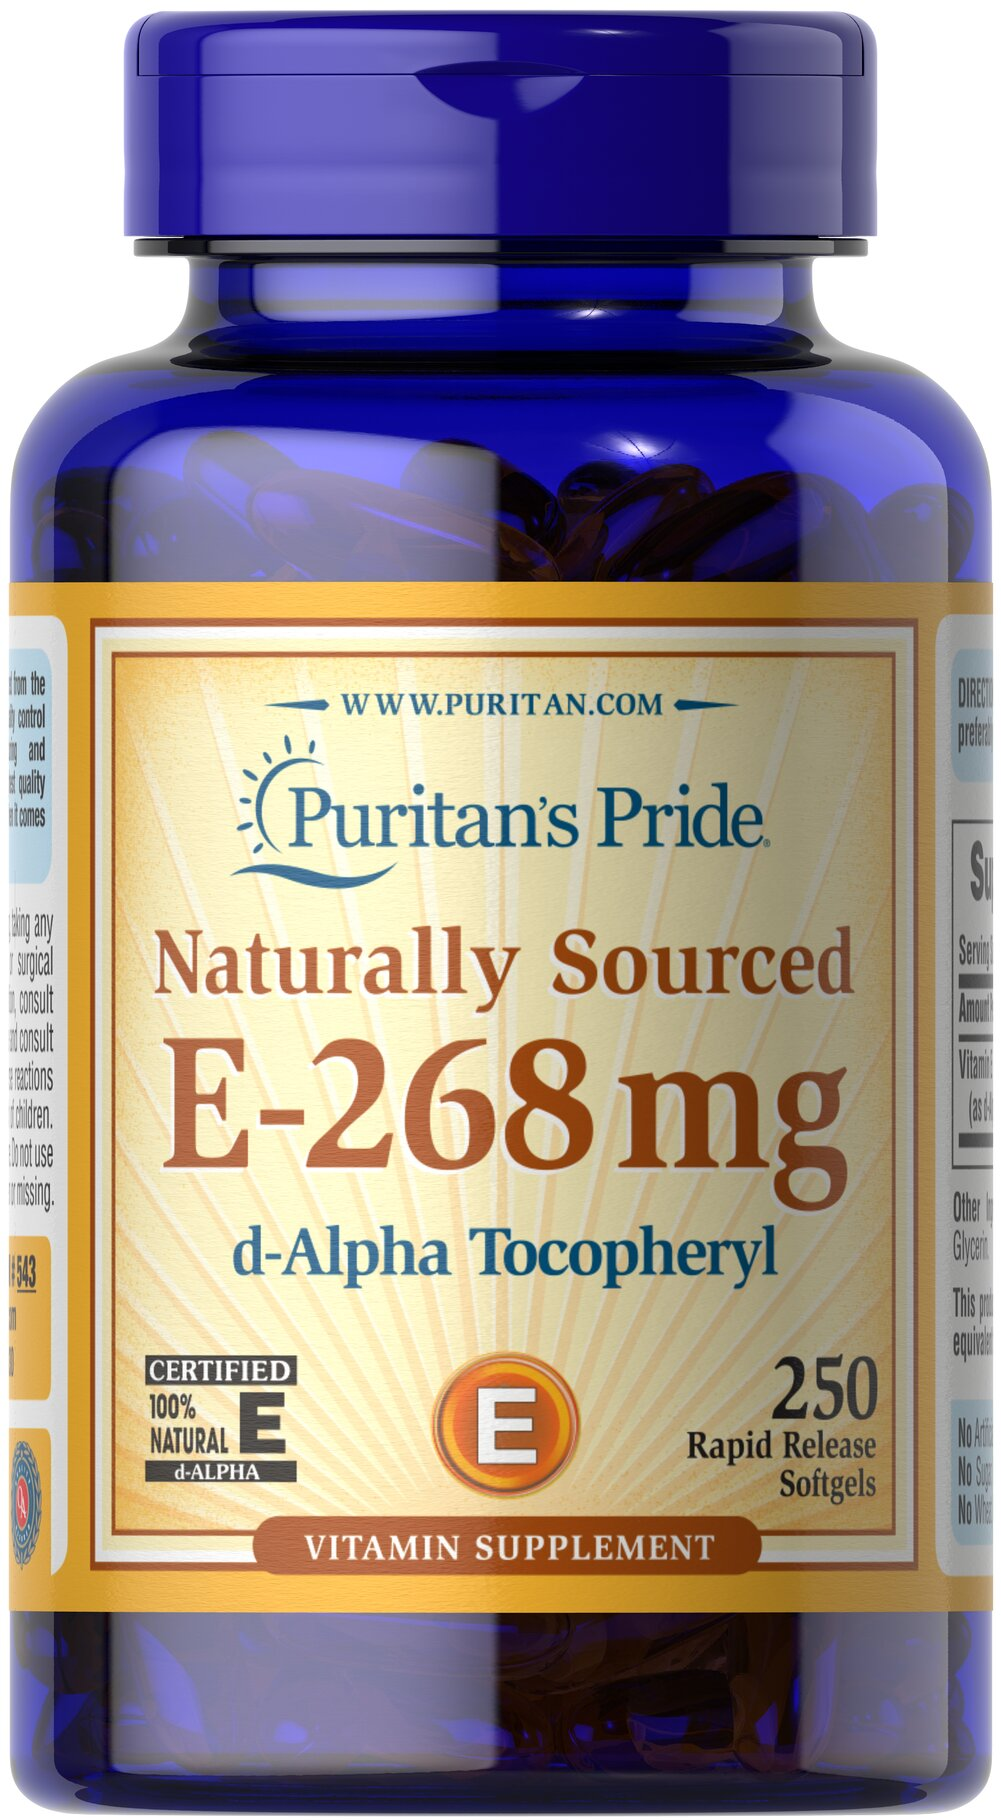 Vitamin E-400 iu 100% Natural <p><b>Vitamin E</b> is a potent antioxidant that helps fight free radicals.** Studies have shown that oxidative stress caused by free radicals may contribute to the premature aging of cells.** Vitamin E also promotes immune function and helps support cardiovascular health.** Our Vitamin E is 100% natural and comes in a convenient to use softgel.</p> 250 Softgels 400 IU $49.99